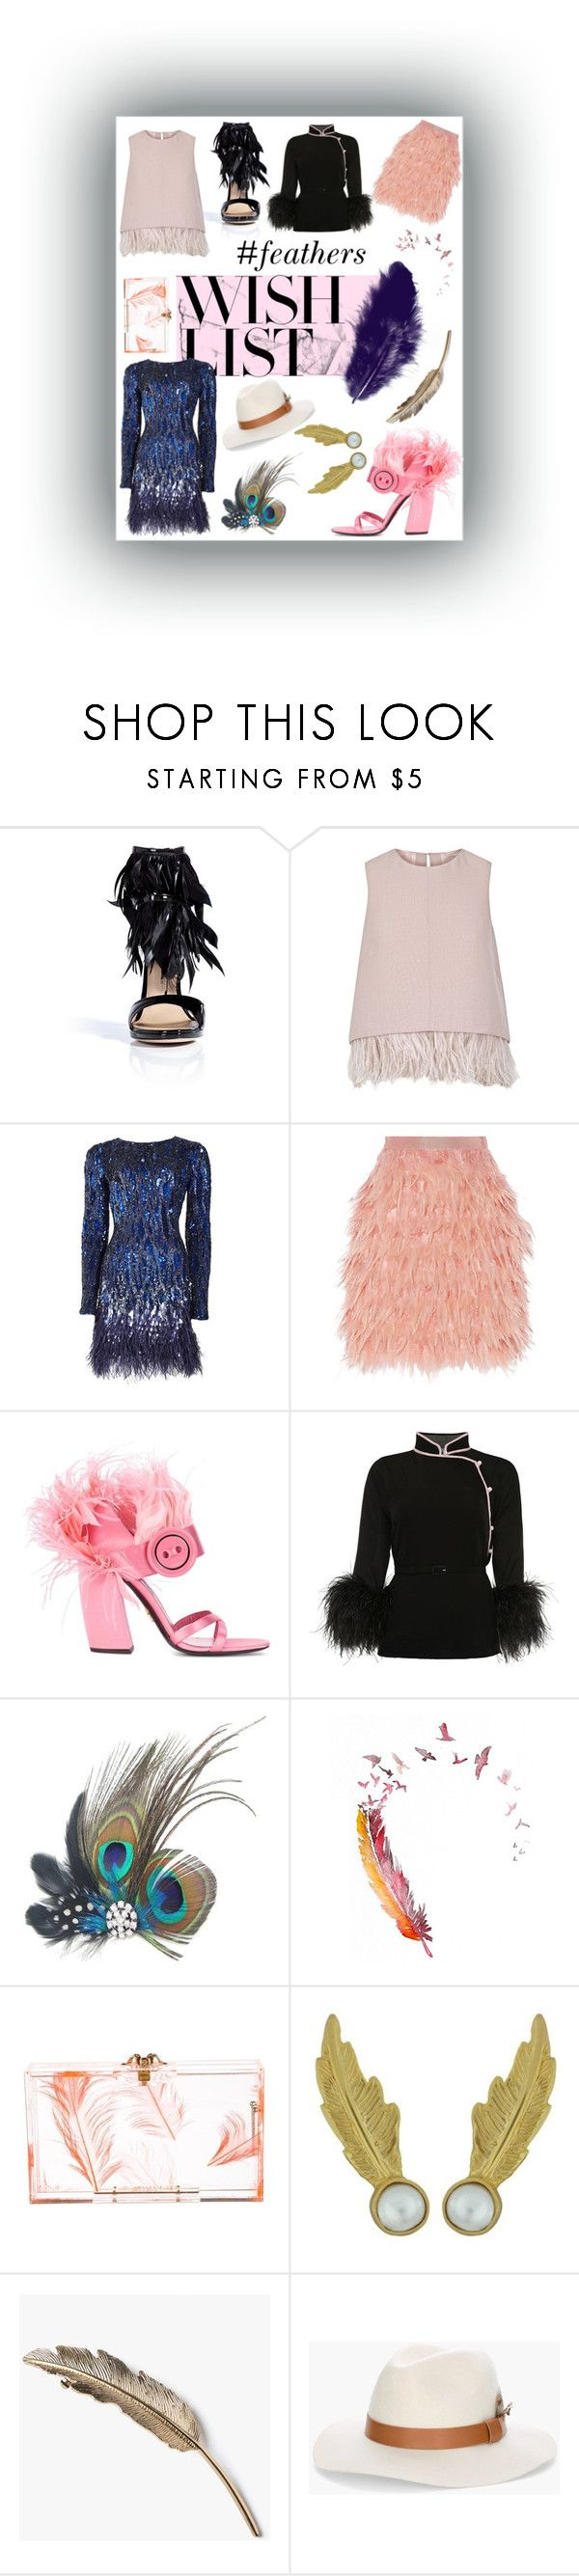 """""""#PolyPresents: Wish List"""" by faustipepa on Polyvore featuring moda, Paul Andrew, The 2nd Skin Co., Matthew Williamson, DKNY, Prada, WALL, Charlotte Olympia, LeiVanKash y Chico's"""